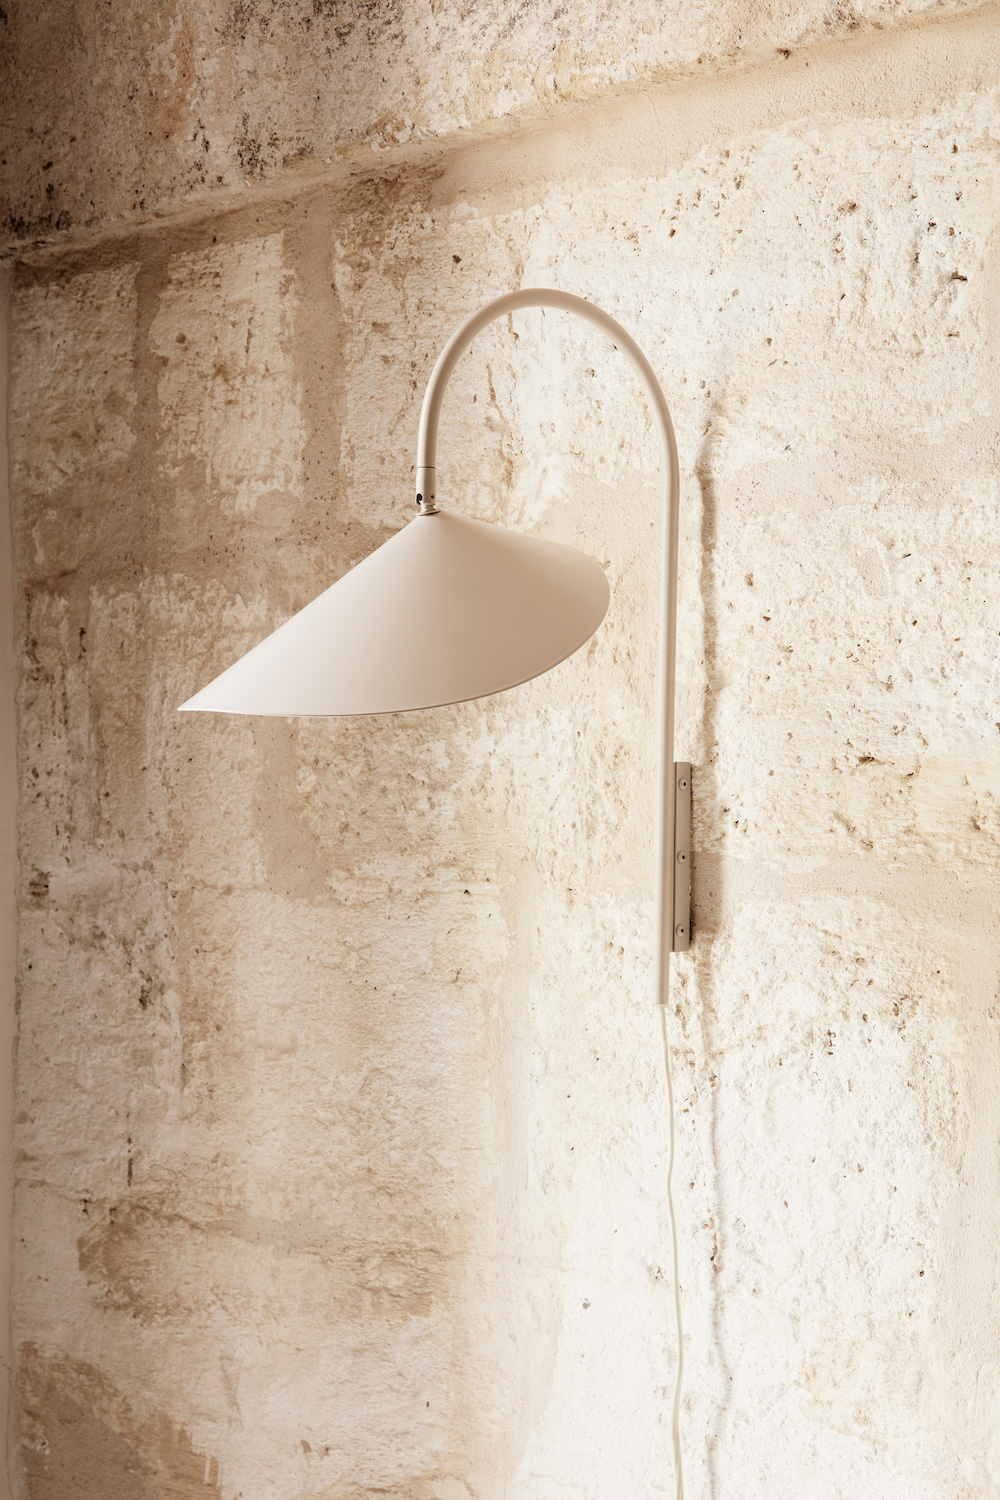 Image caption: Nest's Ferm Living Arum Lamp | Image credit: Nest